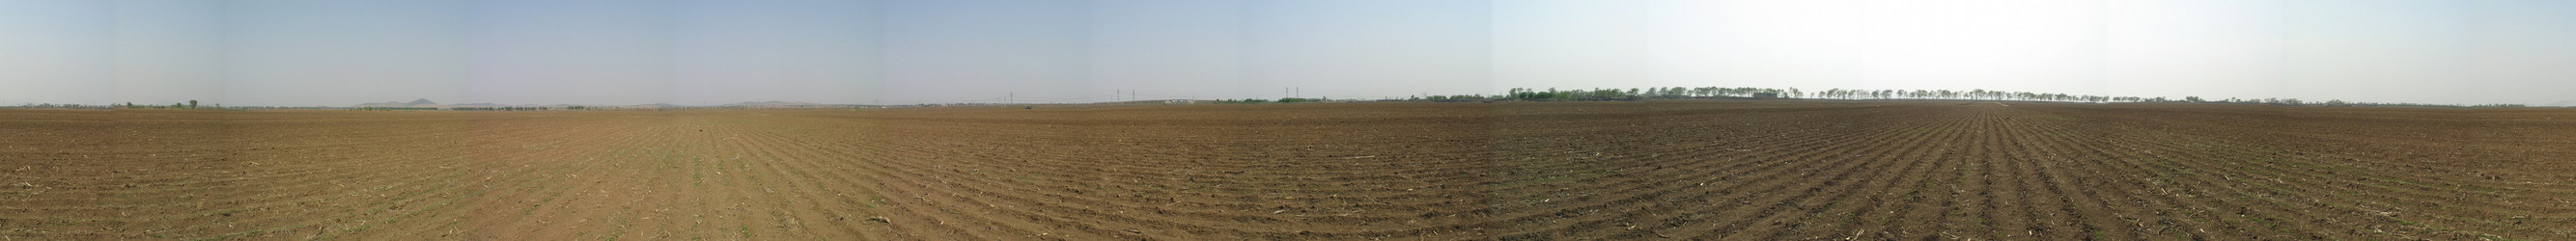 Panoramic Photo of 41N 121E